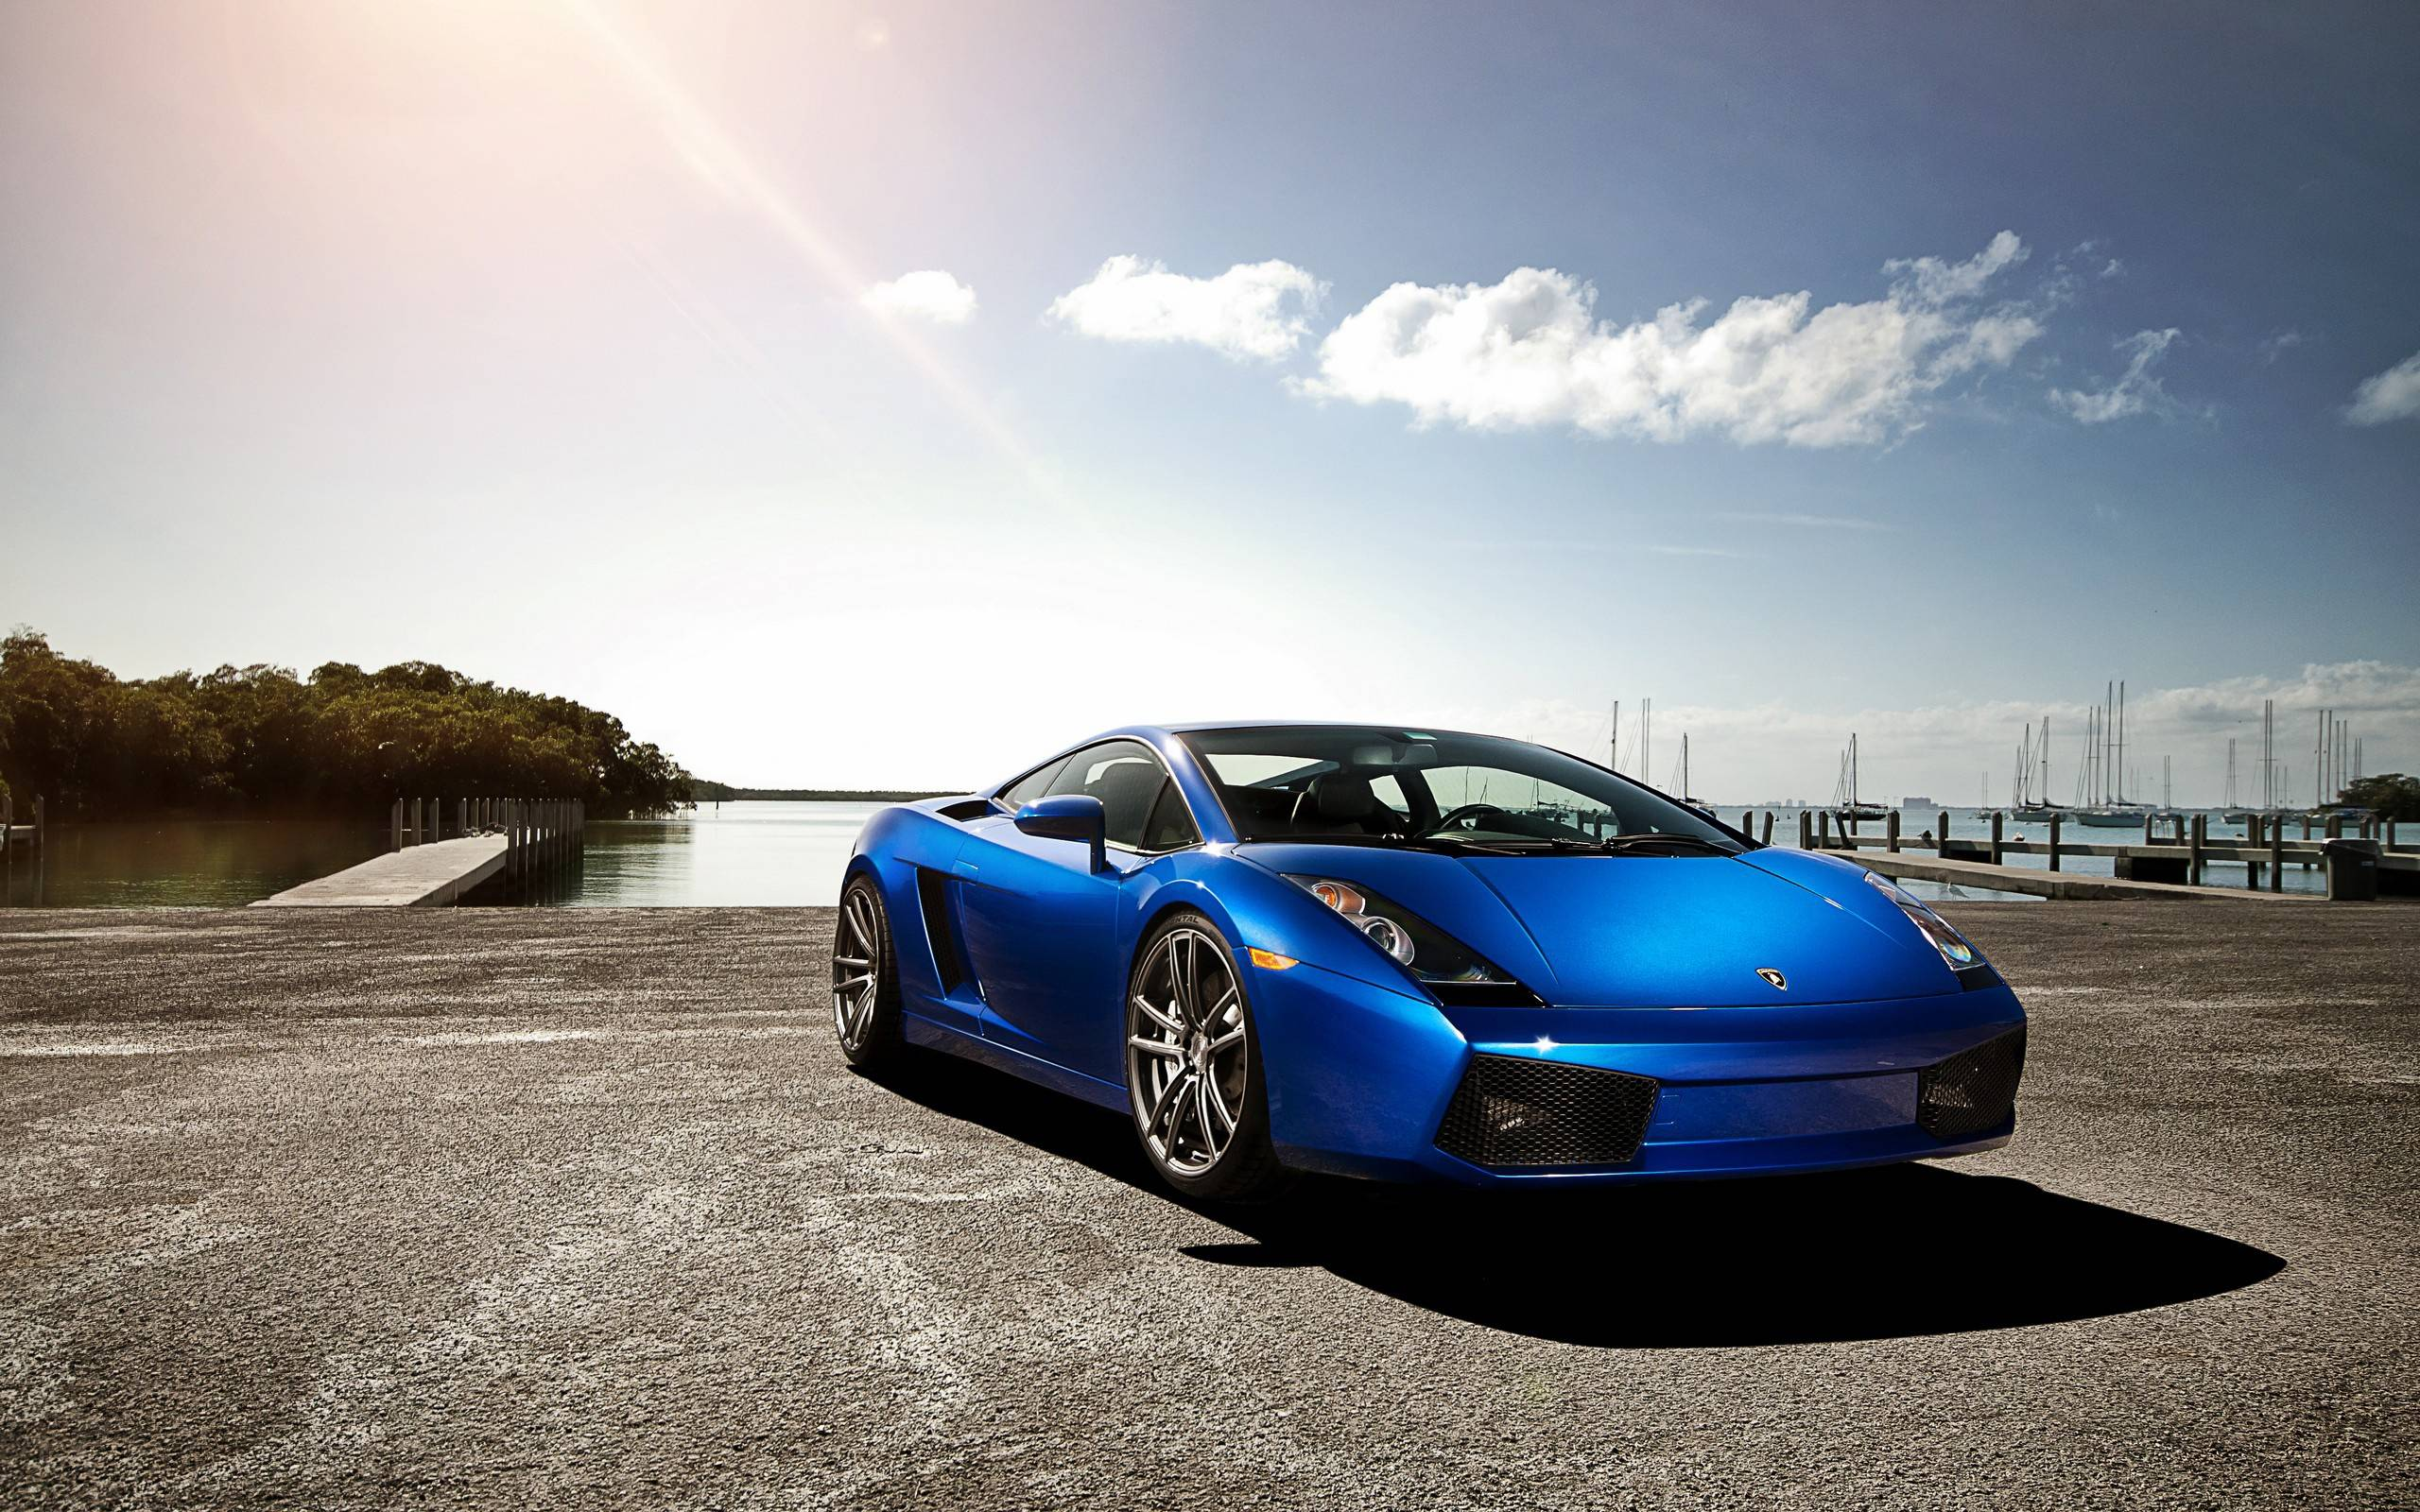 Full Hd Blue Cars Desktop Wallpapers Wallpaper Cave